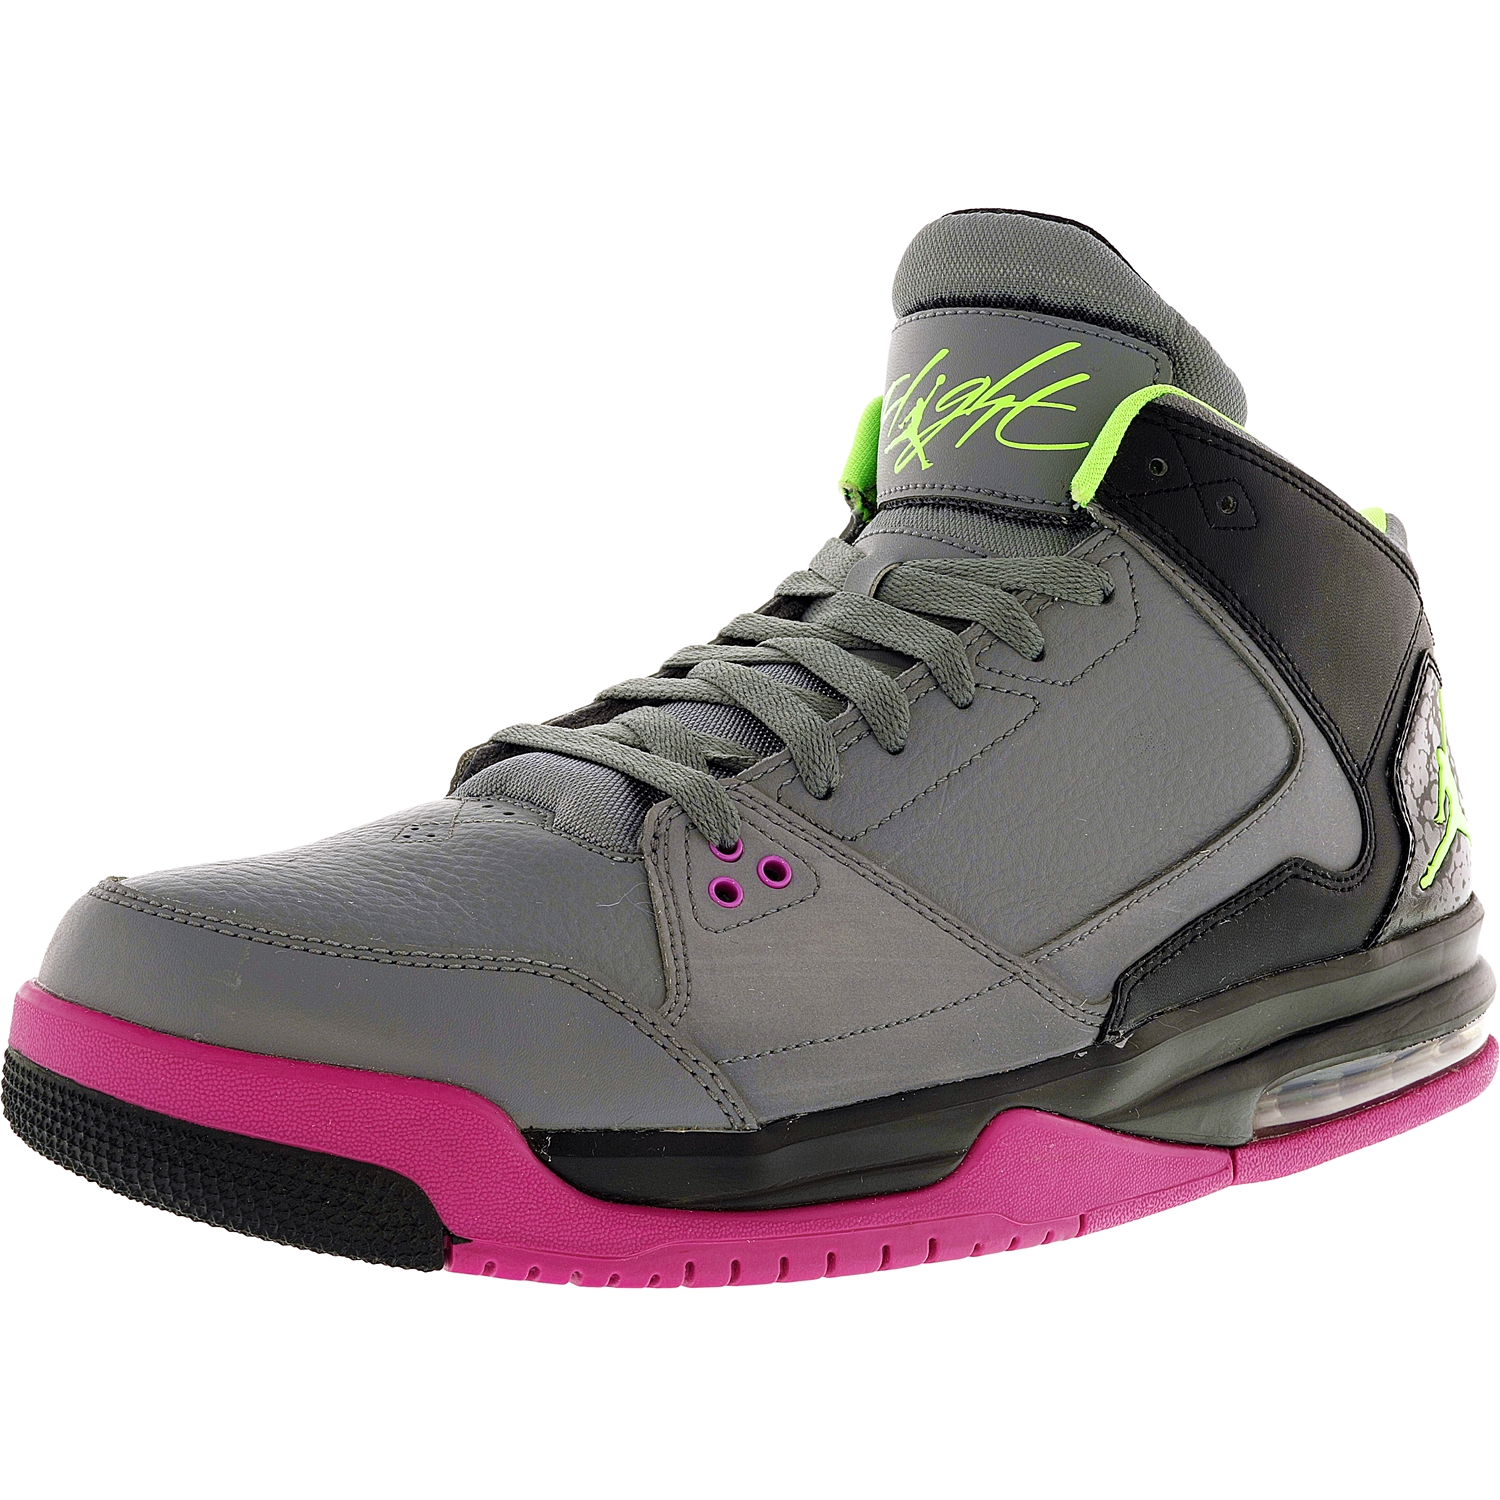 Nike Men's Air Jordan Flight Origin 090 Ankle-High Leathe...